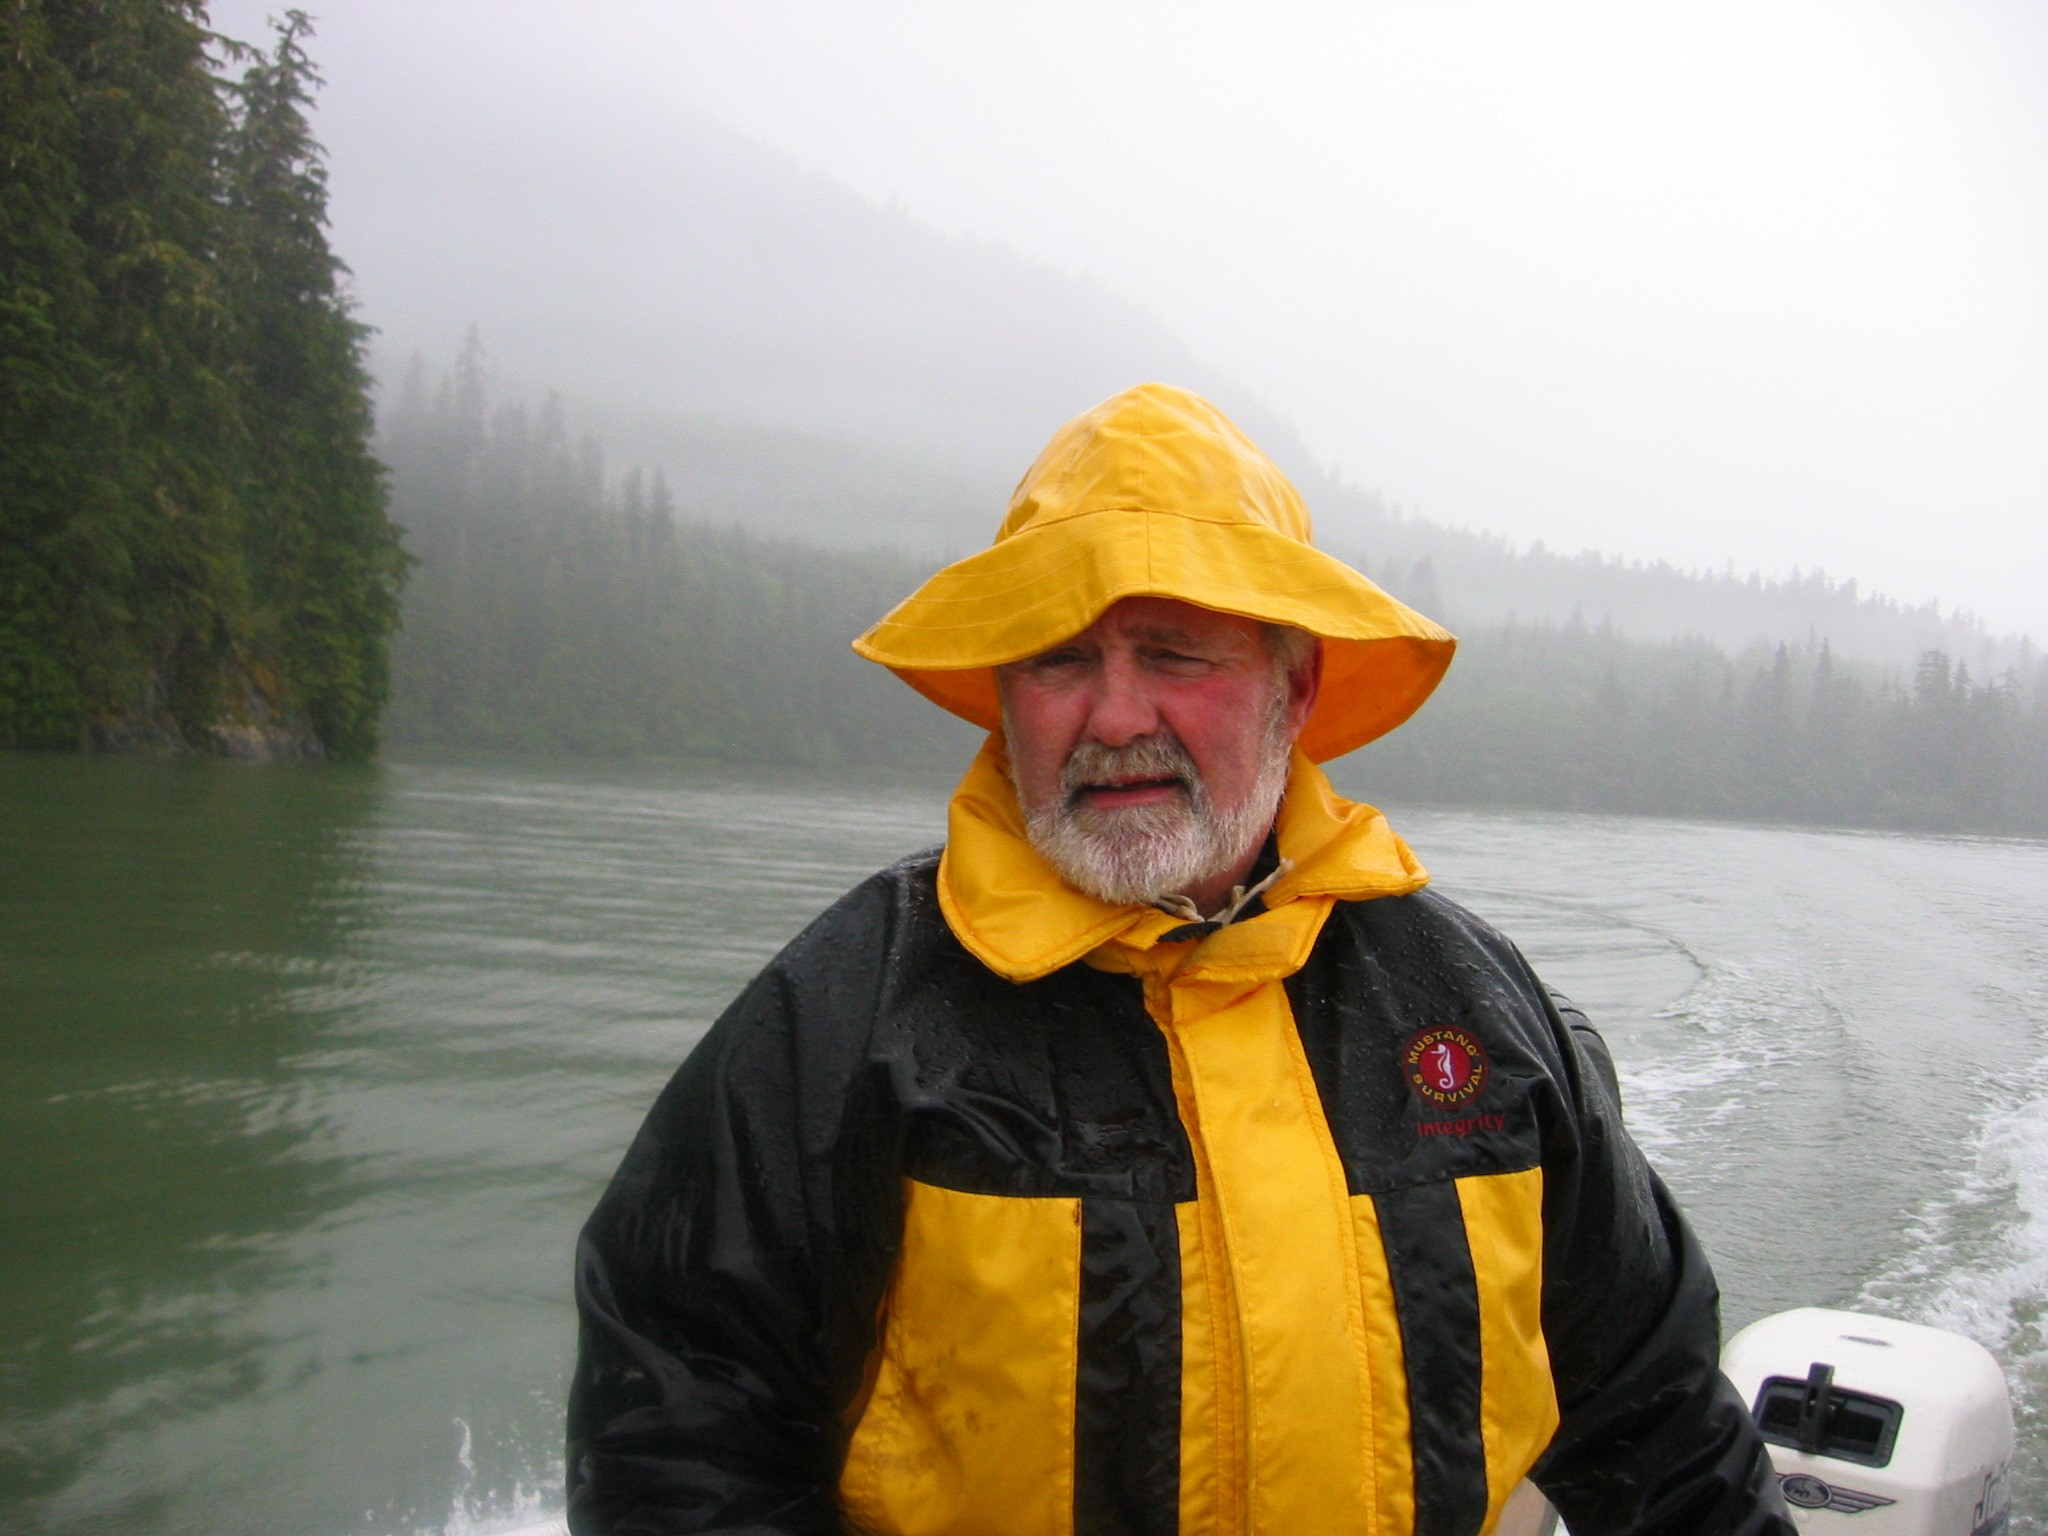 Rain and fog, rain and fog, a soggy Captain heads out to check crab traps early in the morning before the winds come up to rage and blow the channel clear.